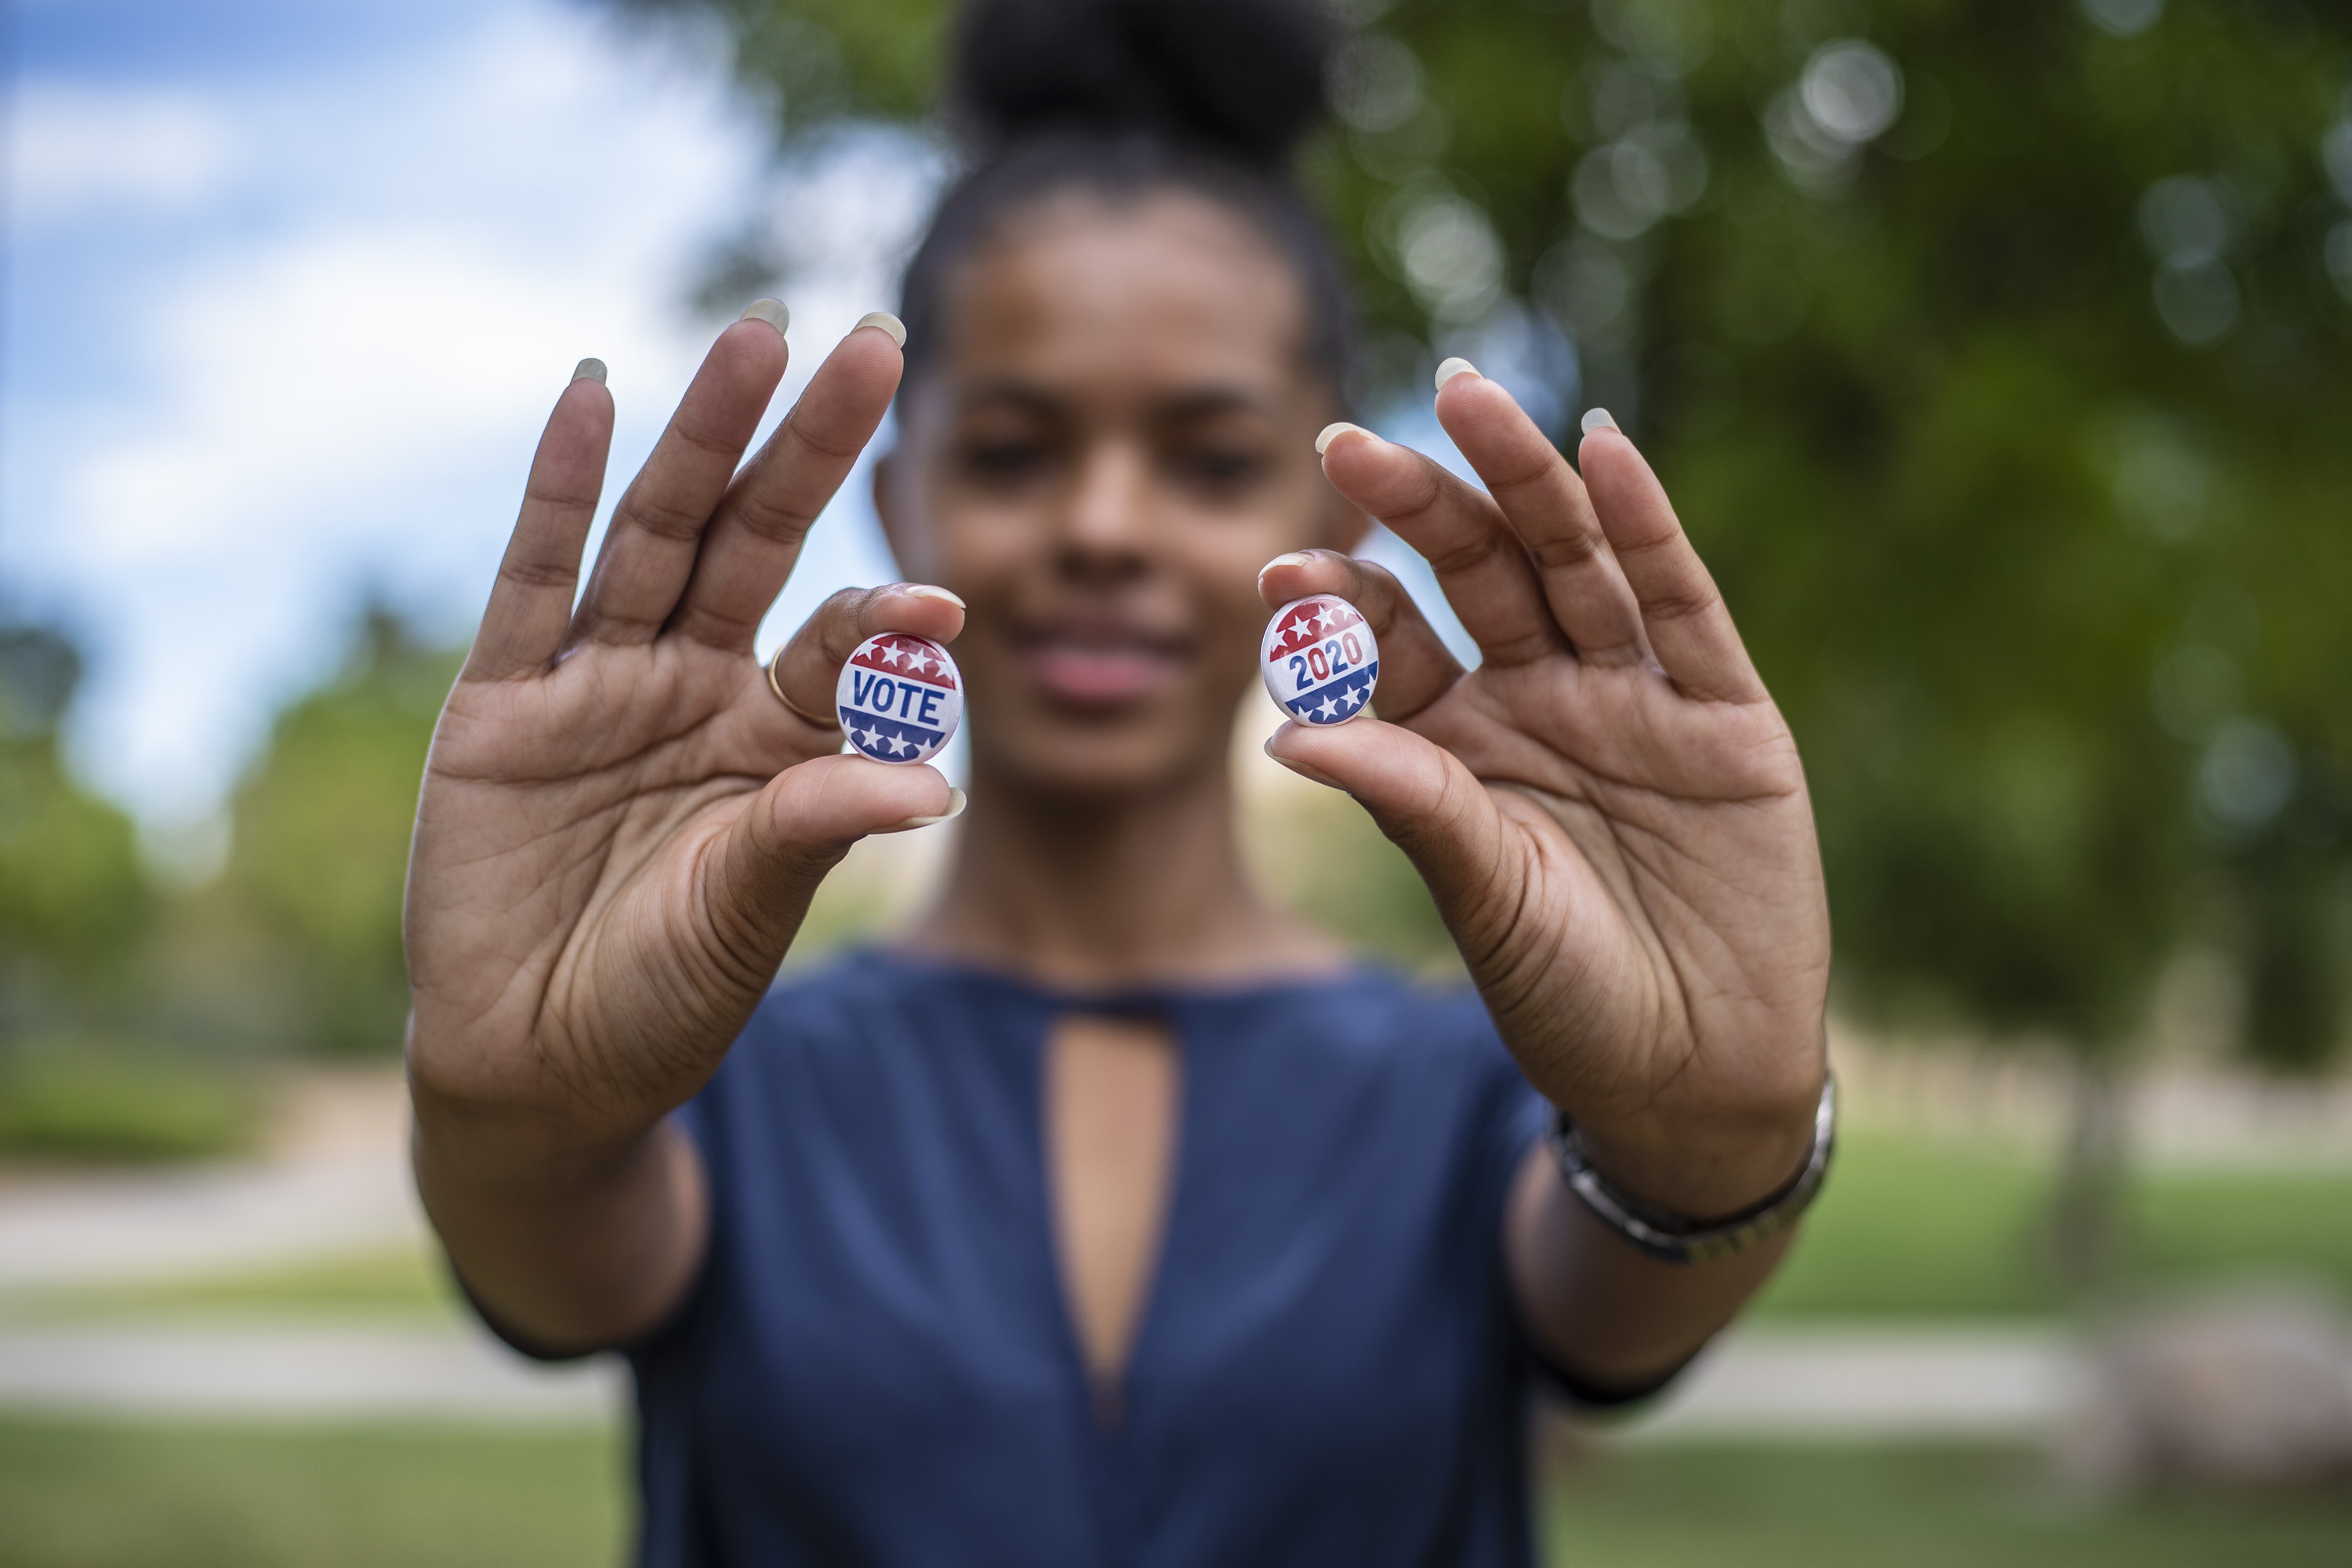 young person holding vote buttons